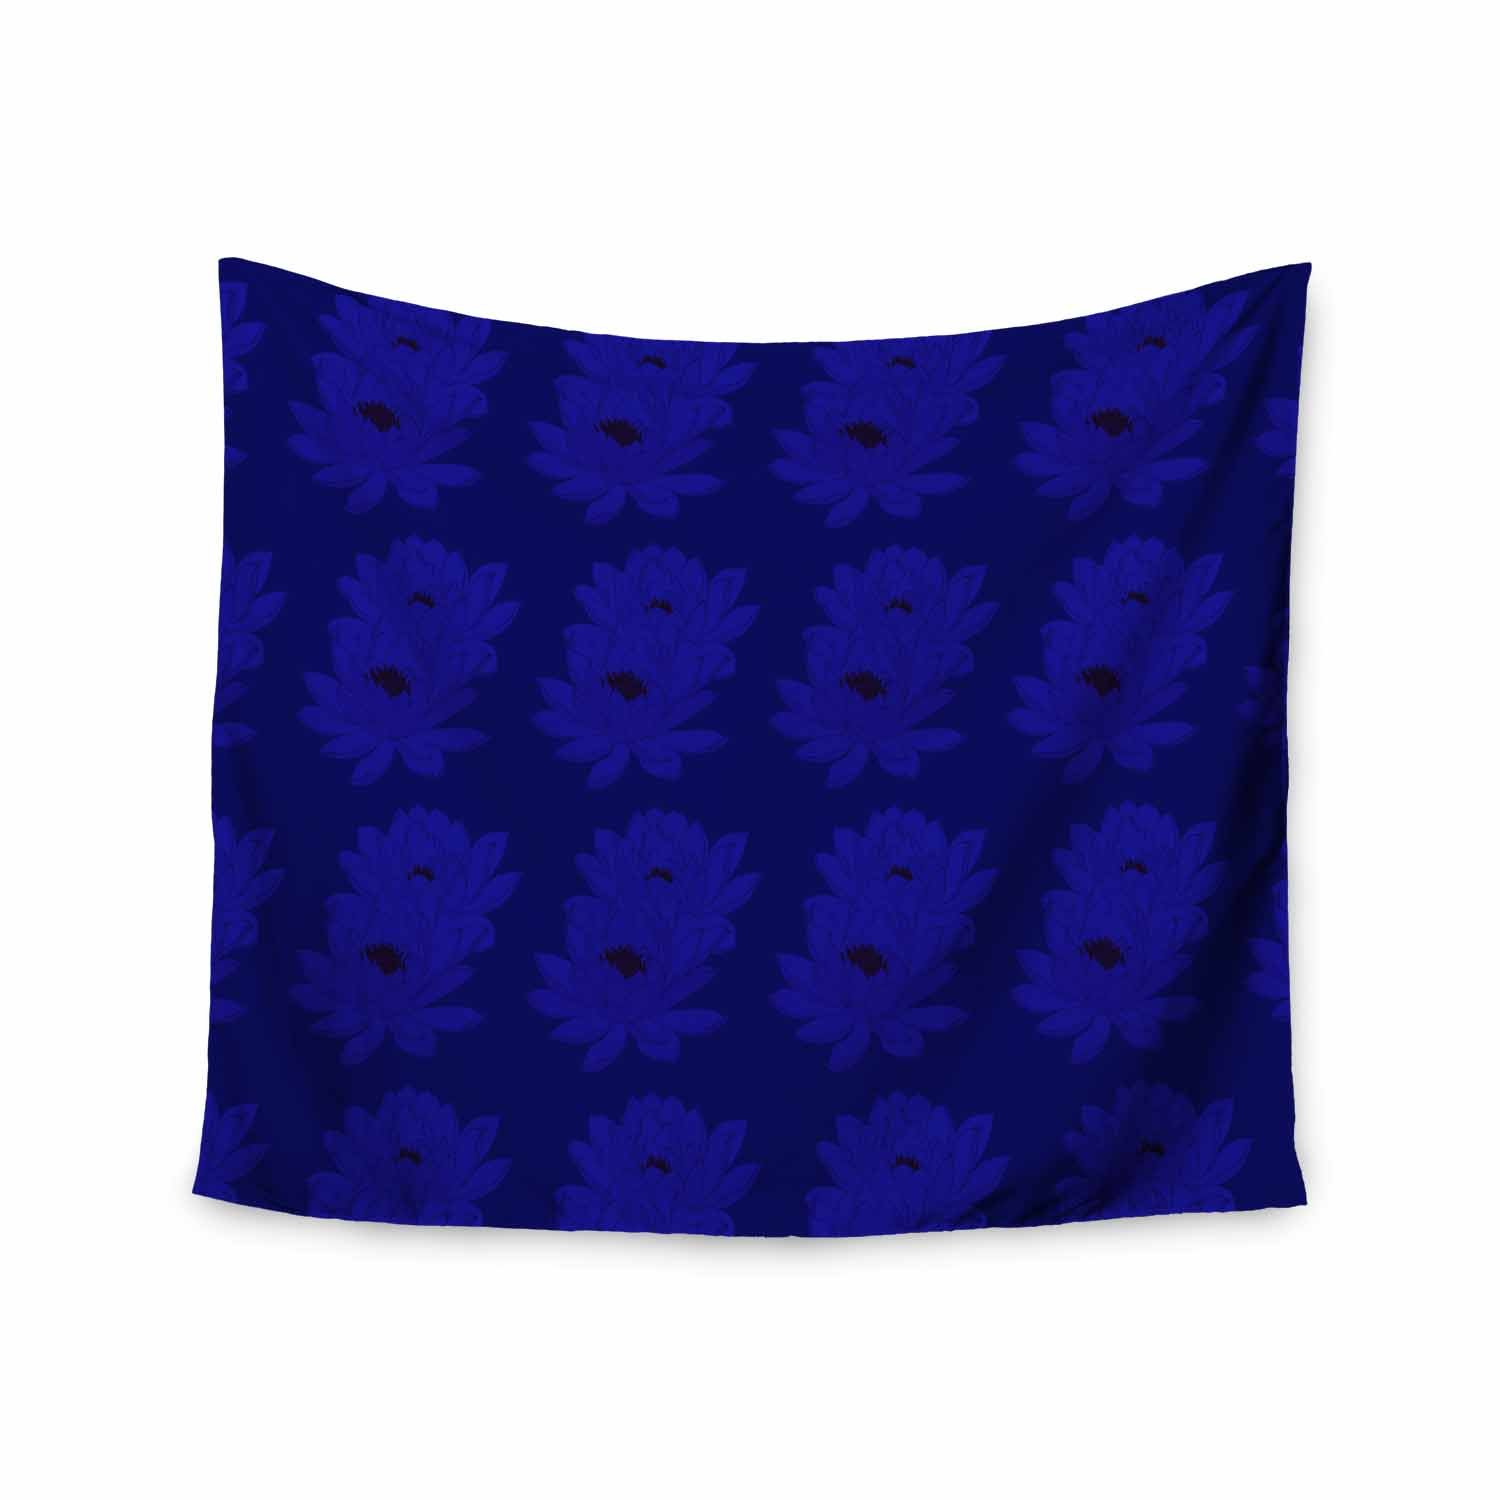 Kess InHouse Stephanie Eden Water Lilies-Night Blue Brown Floral Nature Painting Illustration Wall Tapestry